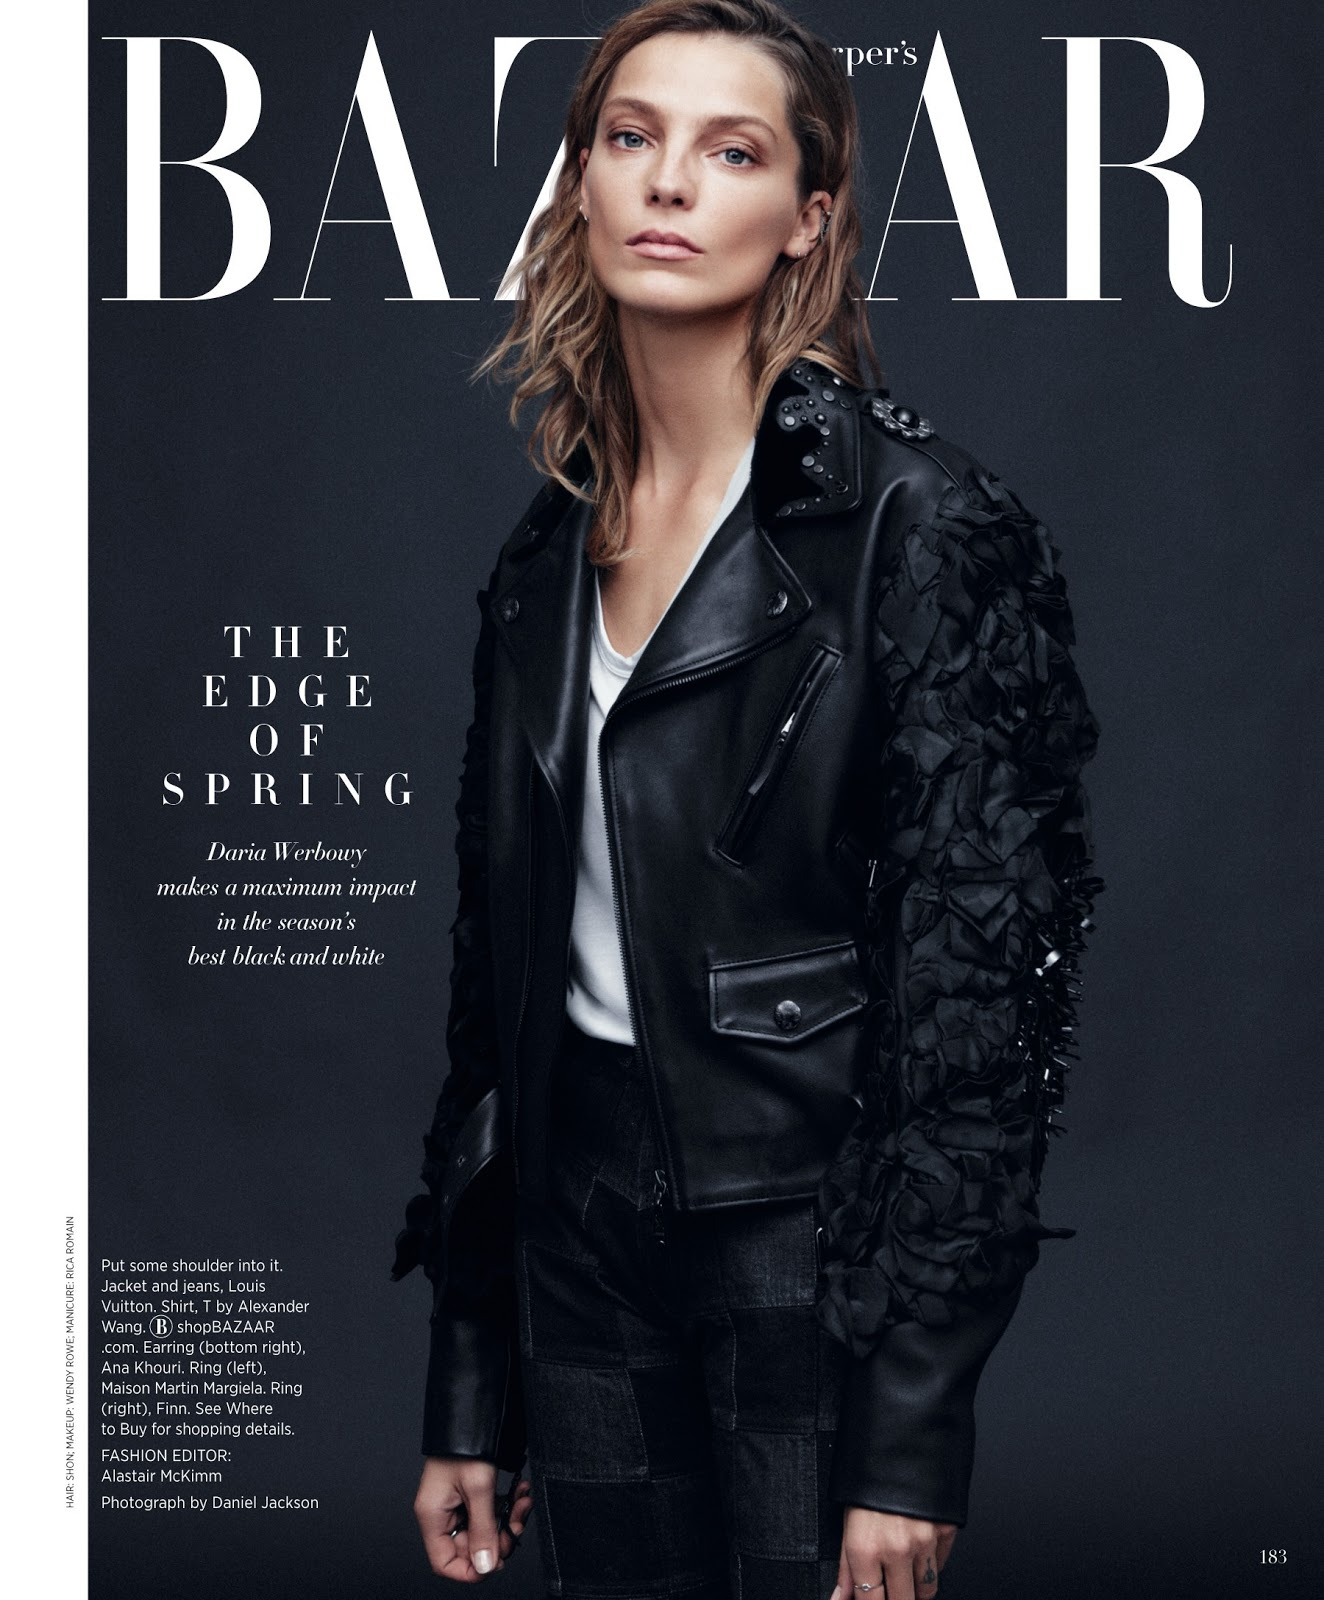 Daria Fashion: The Face Of Beauty Now: Daria Werbowy By Daniel Jackson